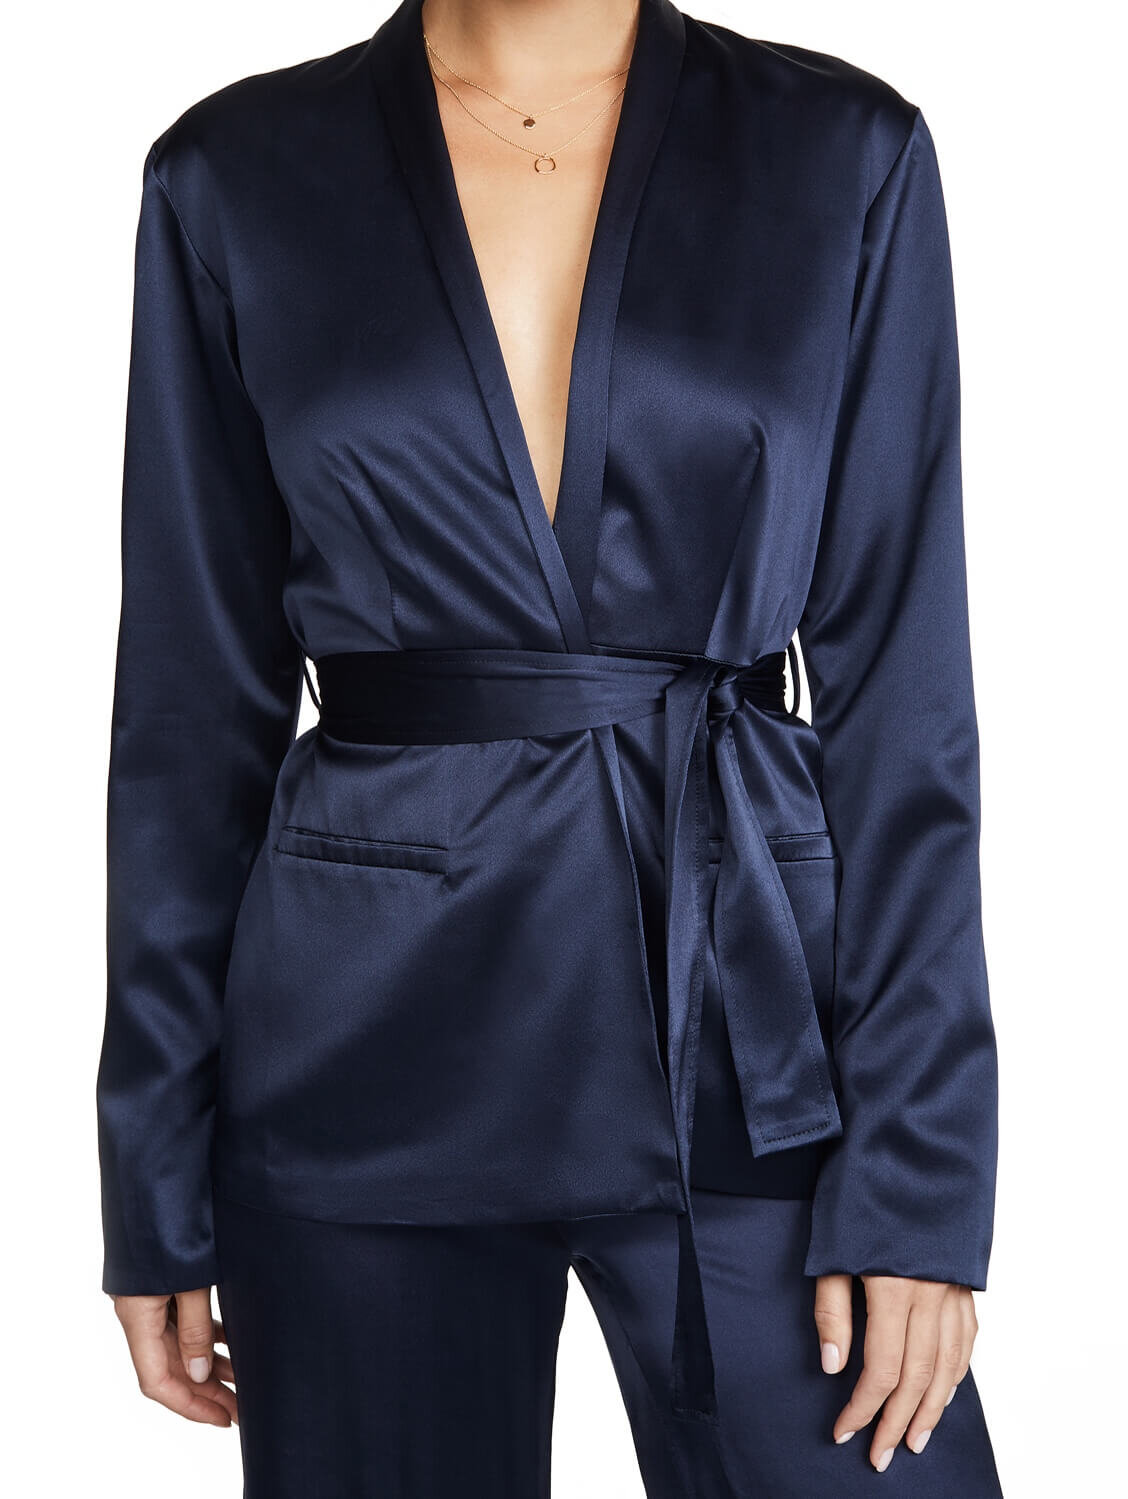 Satin Tie Jacket, $795, Shopbop